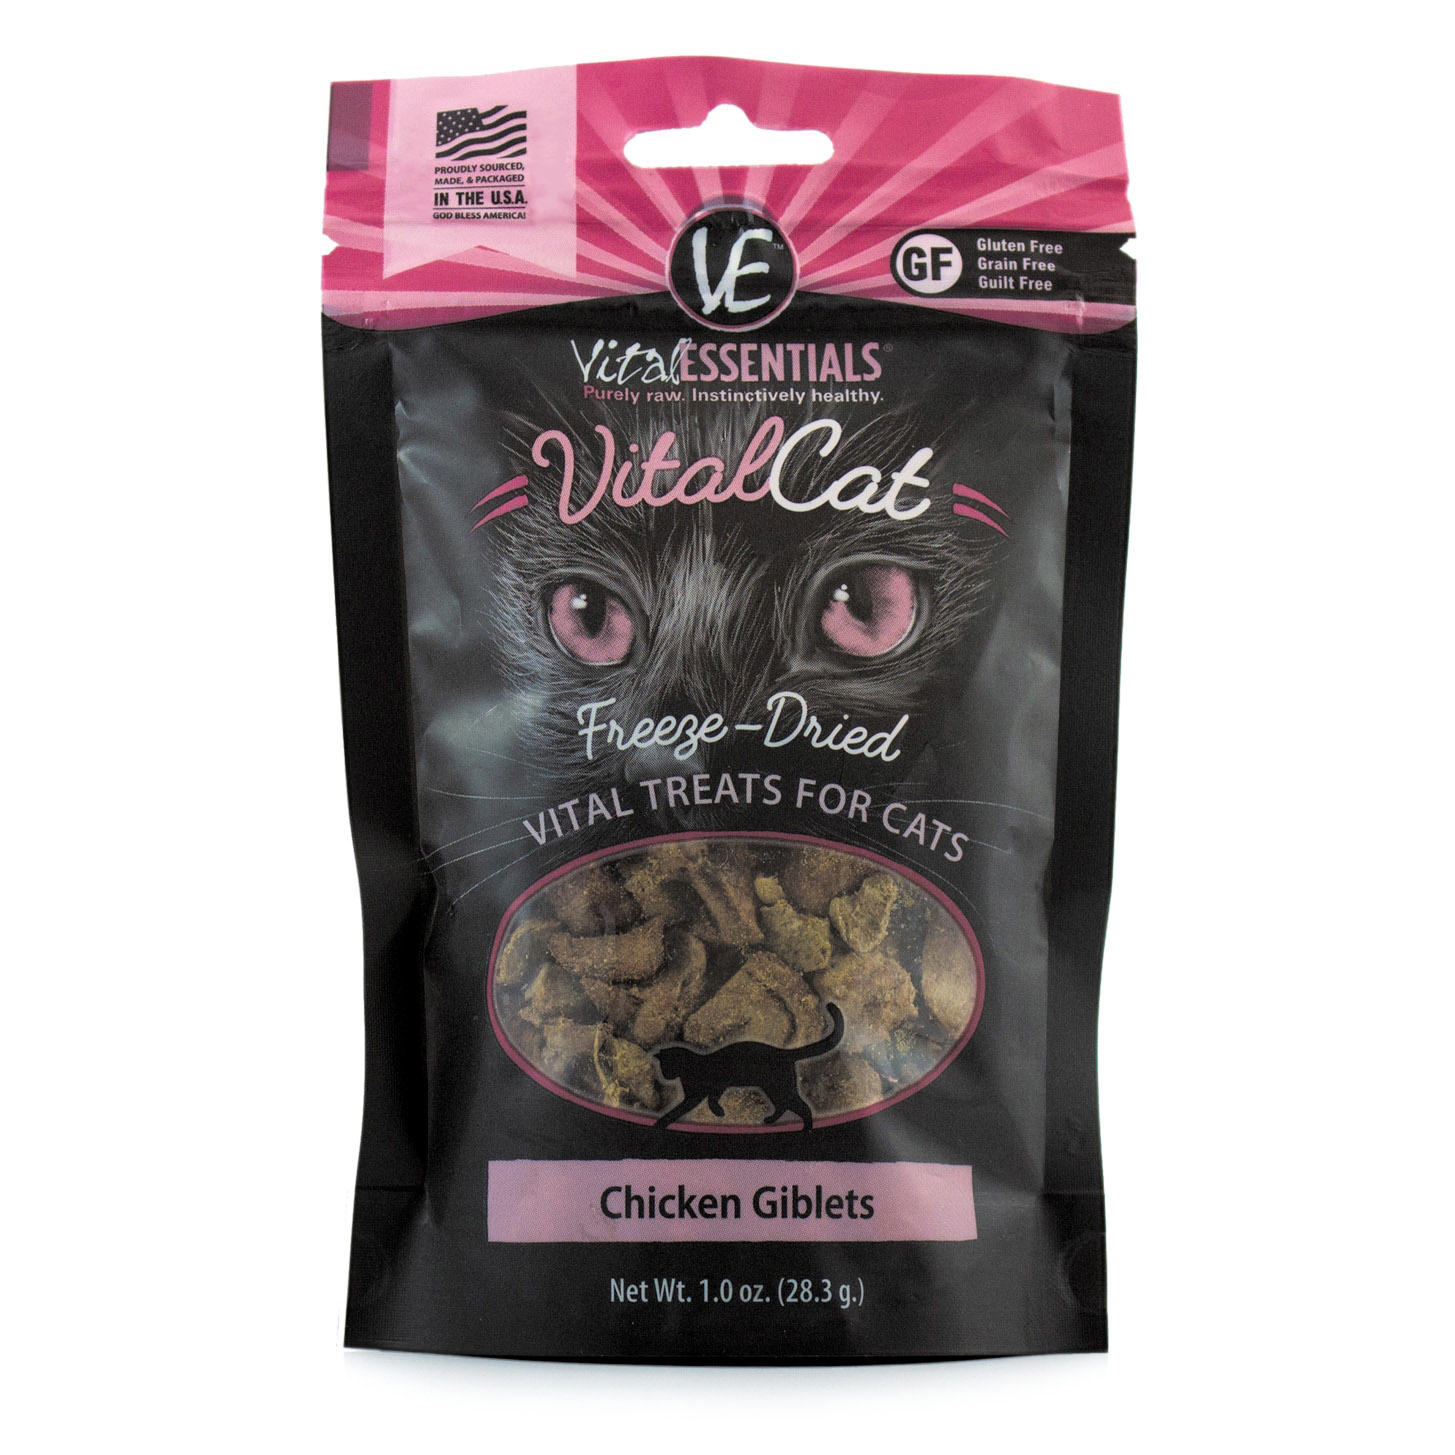 Vital Essentials Vital Essentials Freeze Dried Chicken Giblets For Cats 1oz